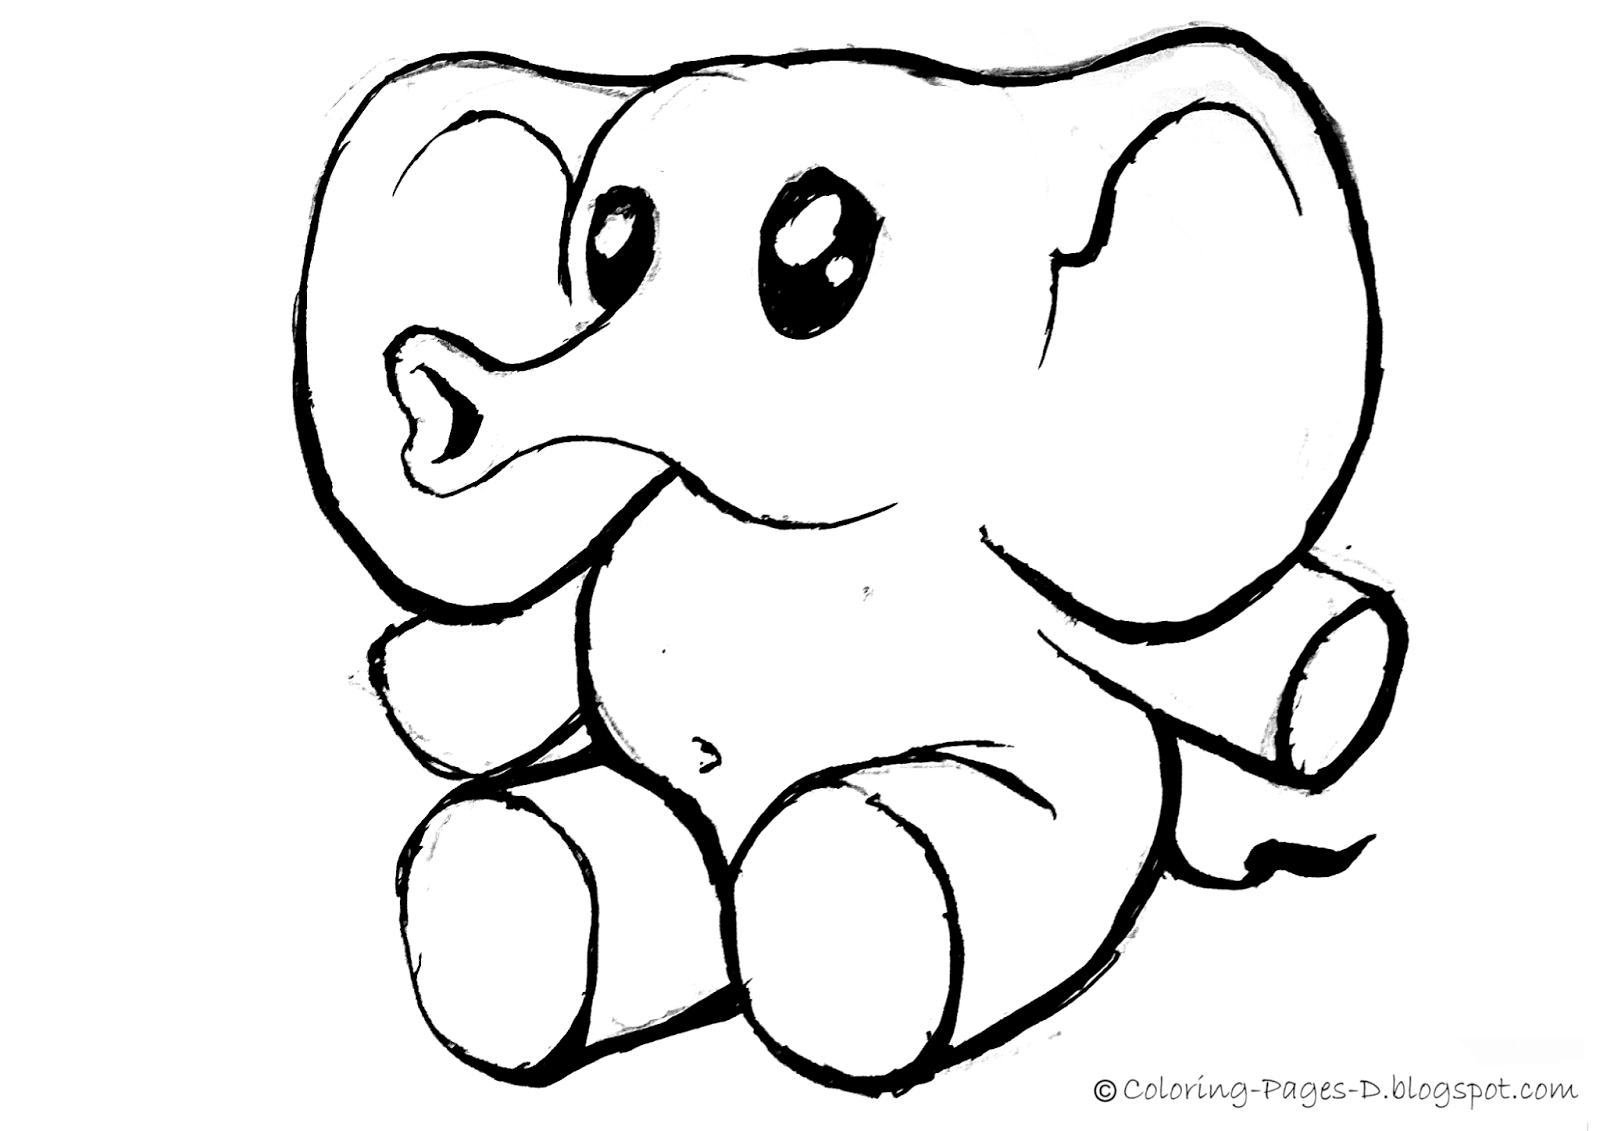 simple baby elephant coloring pages beautiful elephant in the jungle coloring pages elephant coloring pages simple baby